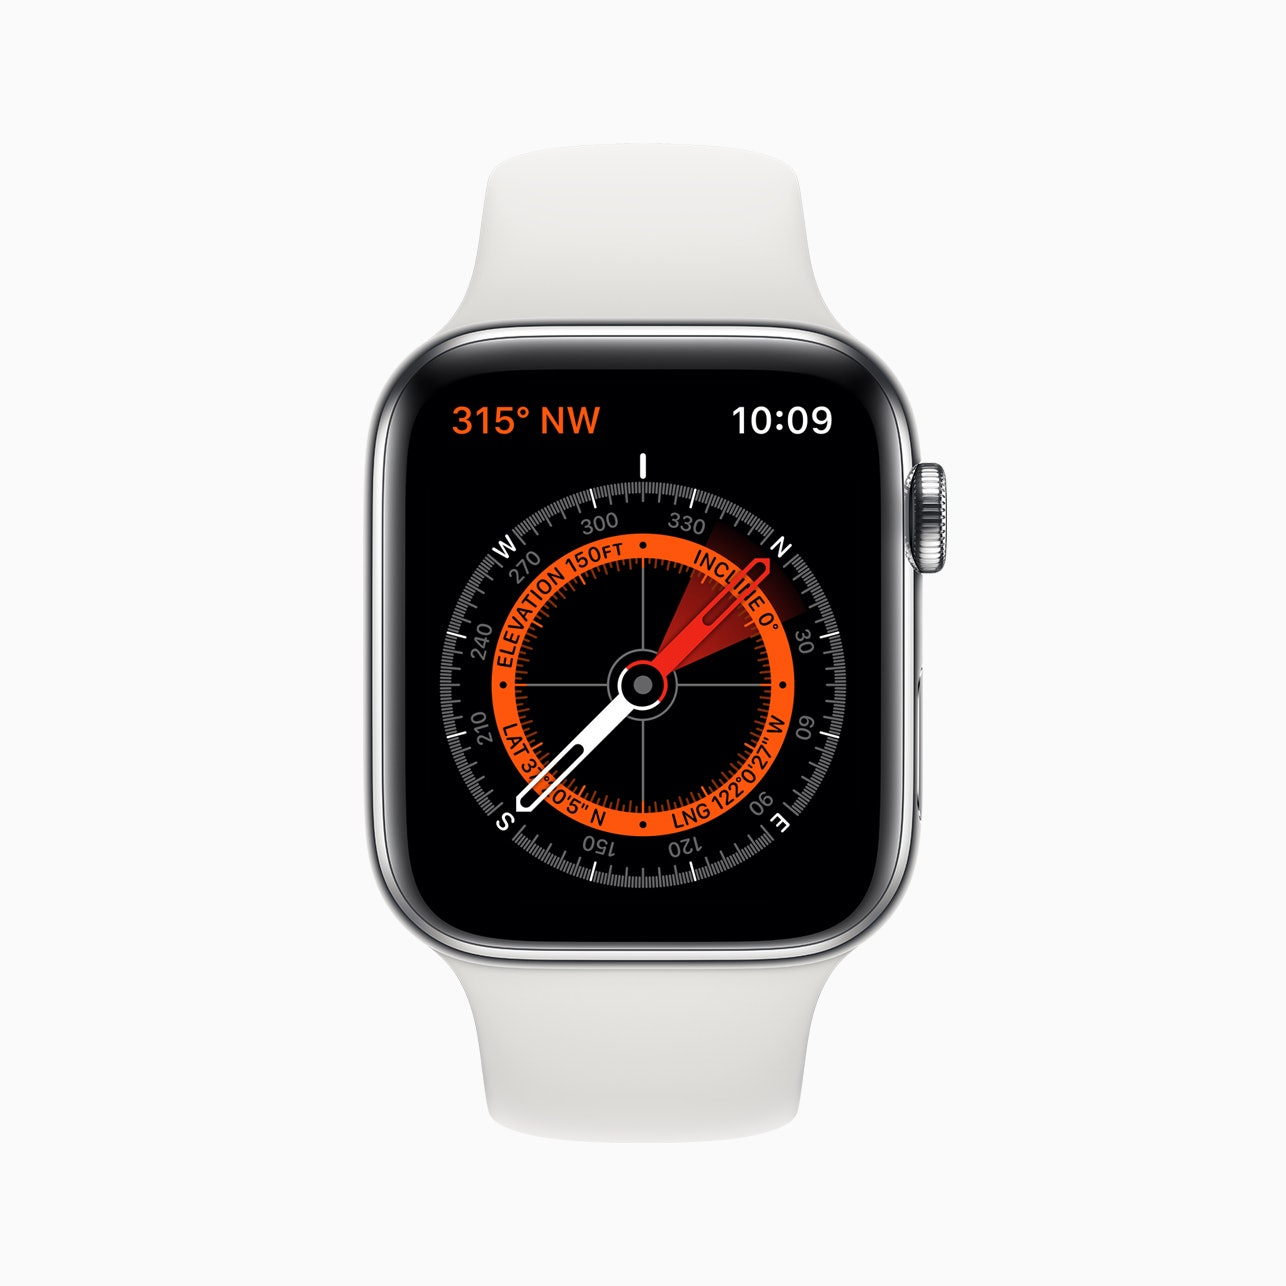 Apple Watch Series 5, now with a compass.